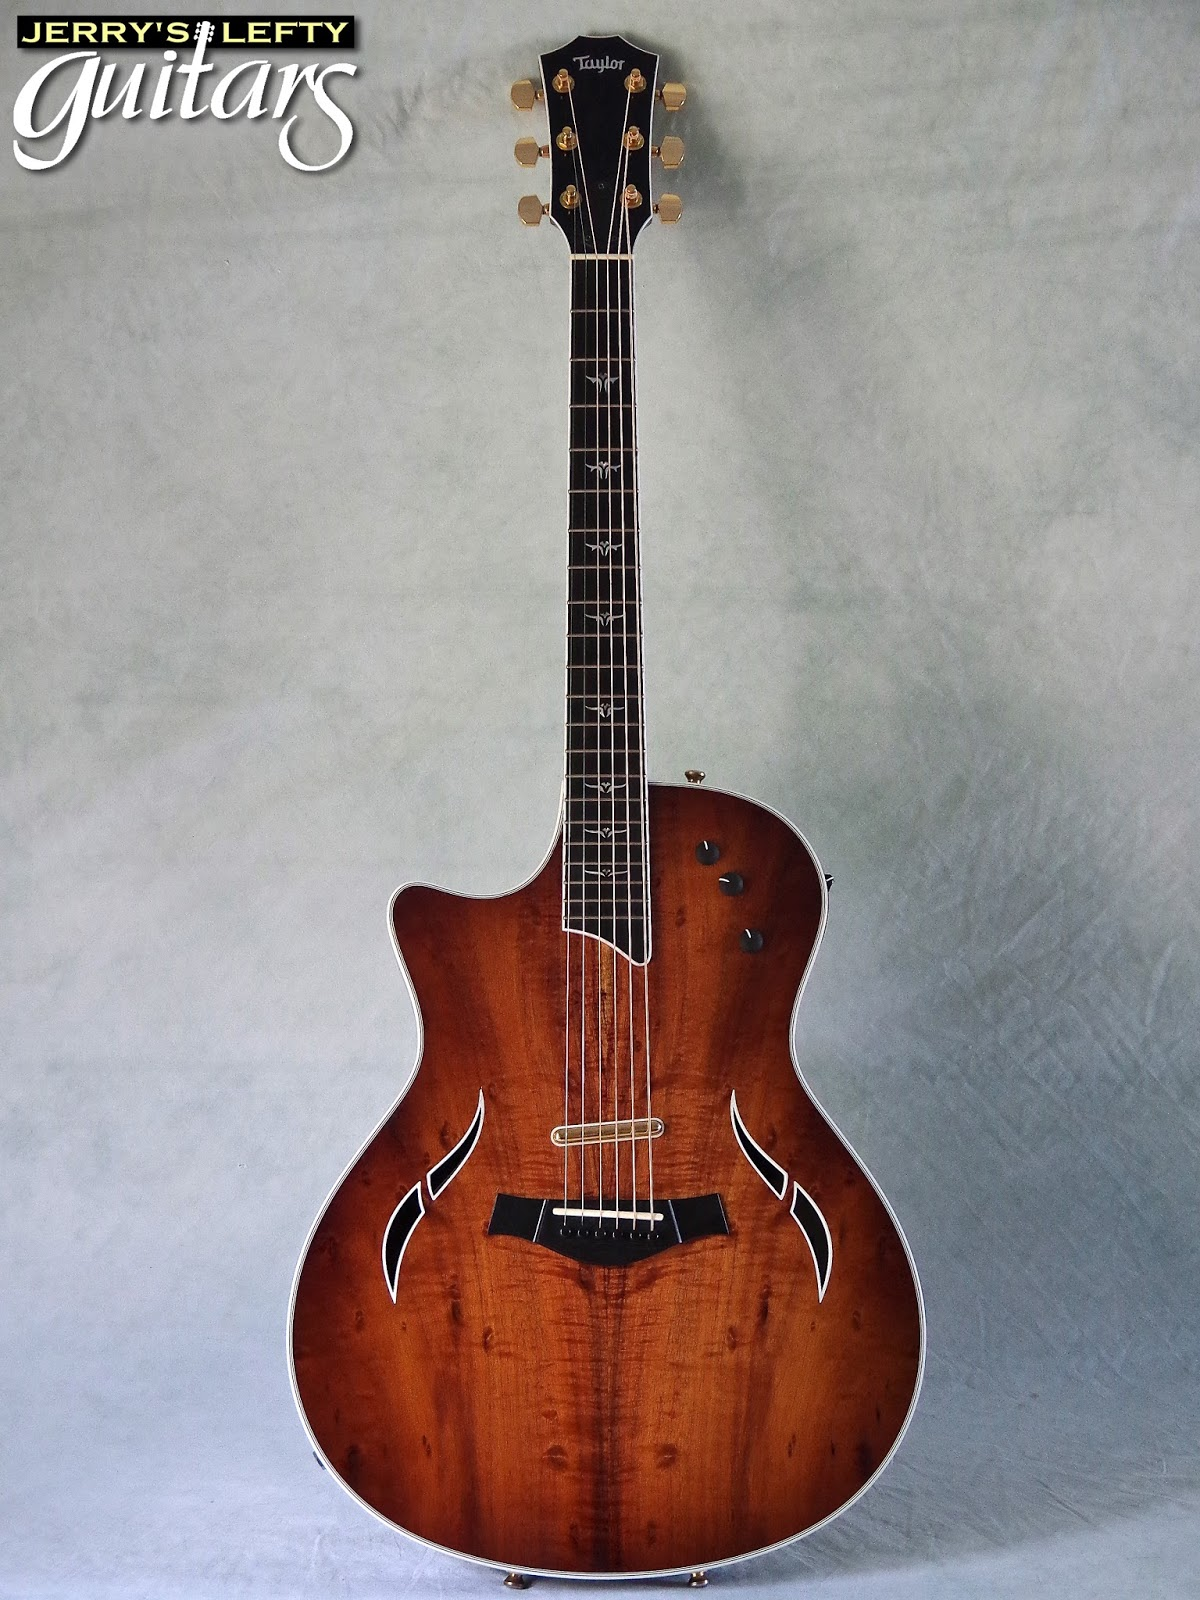 jerry 39 s lefty guitars newest guitar arrivals updated weekly taylor t5 custom koa used left. Black Bedroom Furniture Sets. Home Design Ideas